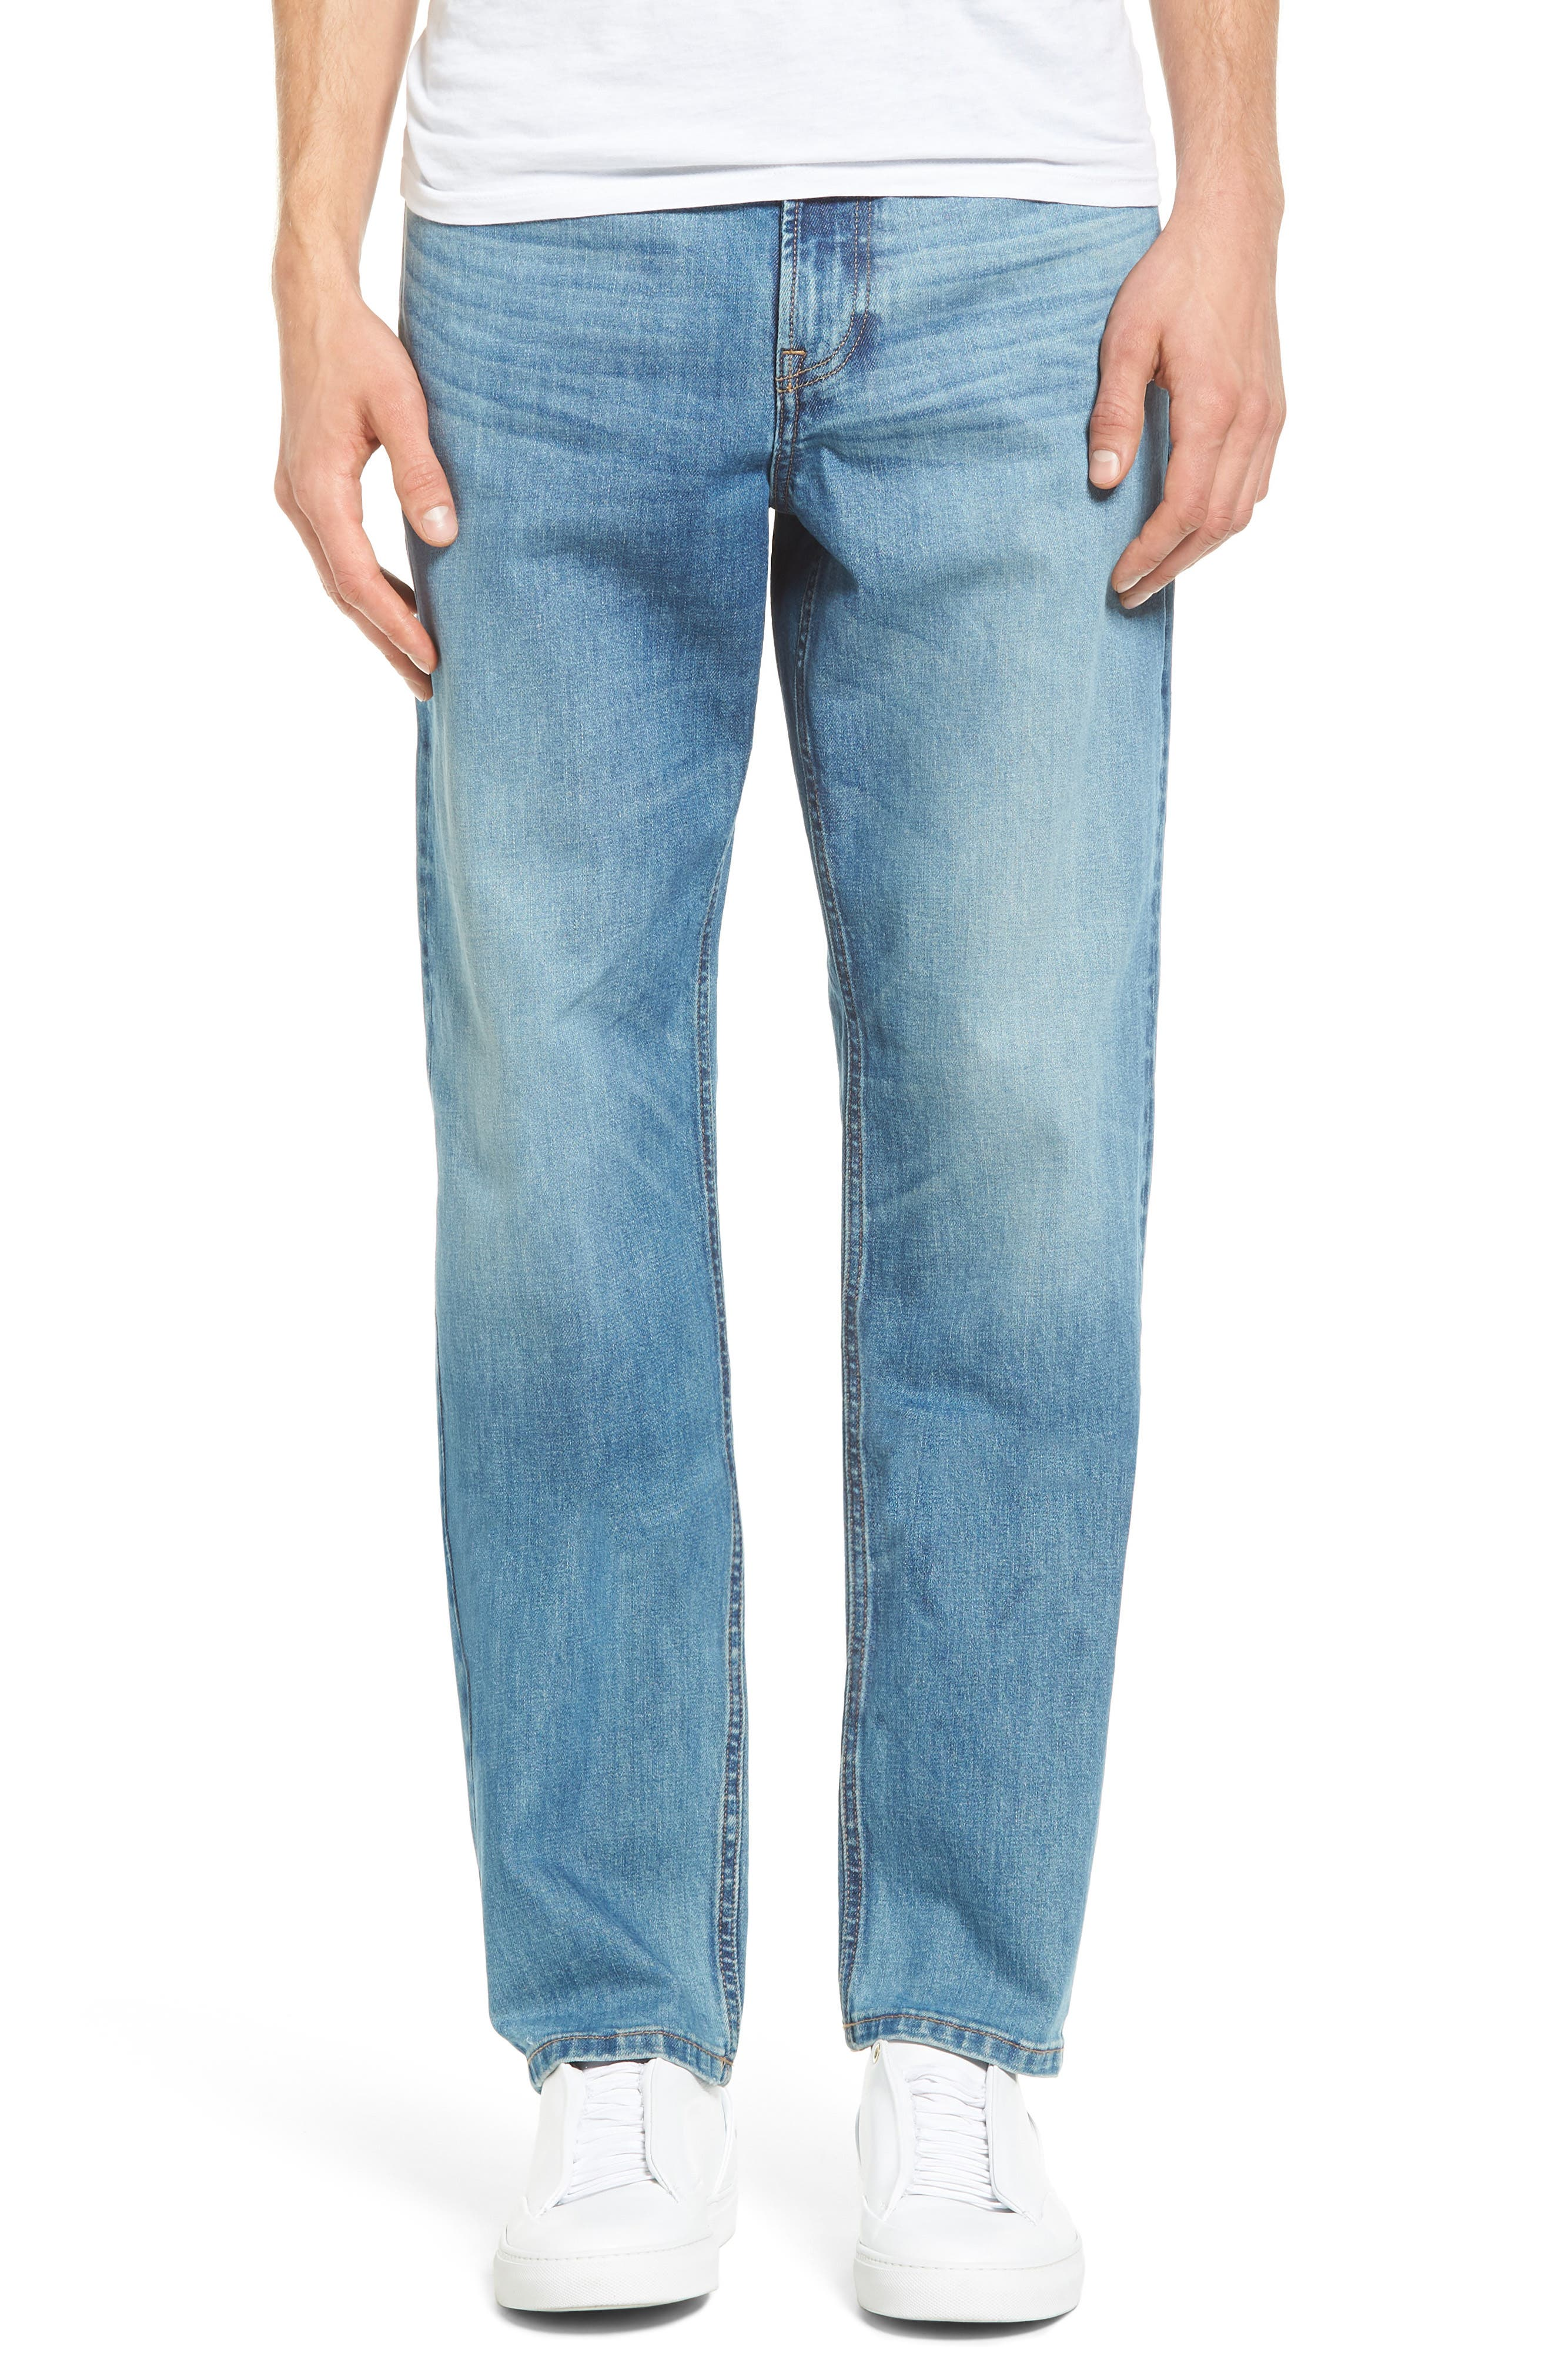 Alternate Image 1 Selected - Everlane The Straight Fit Jeans